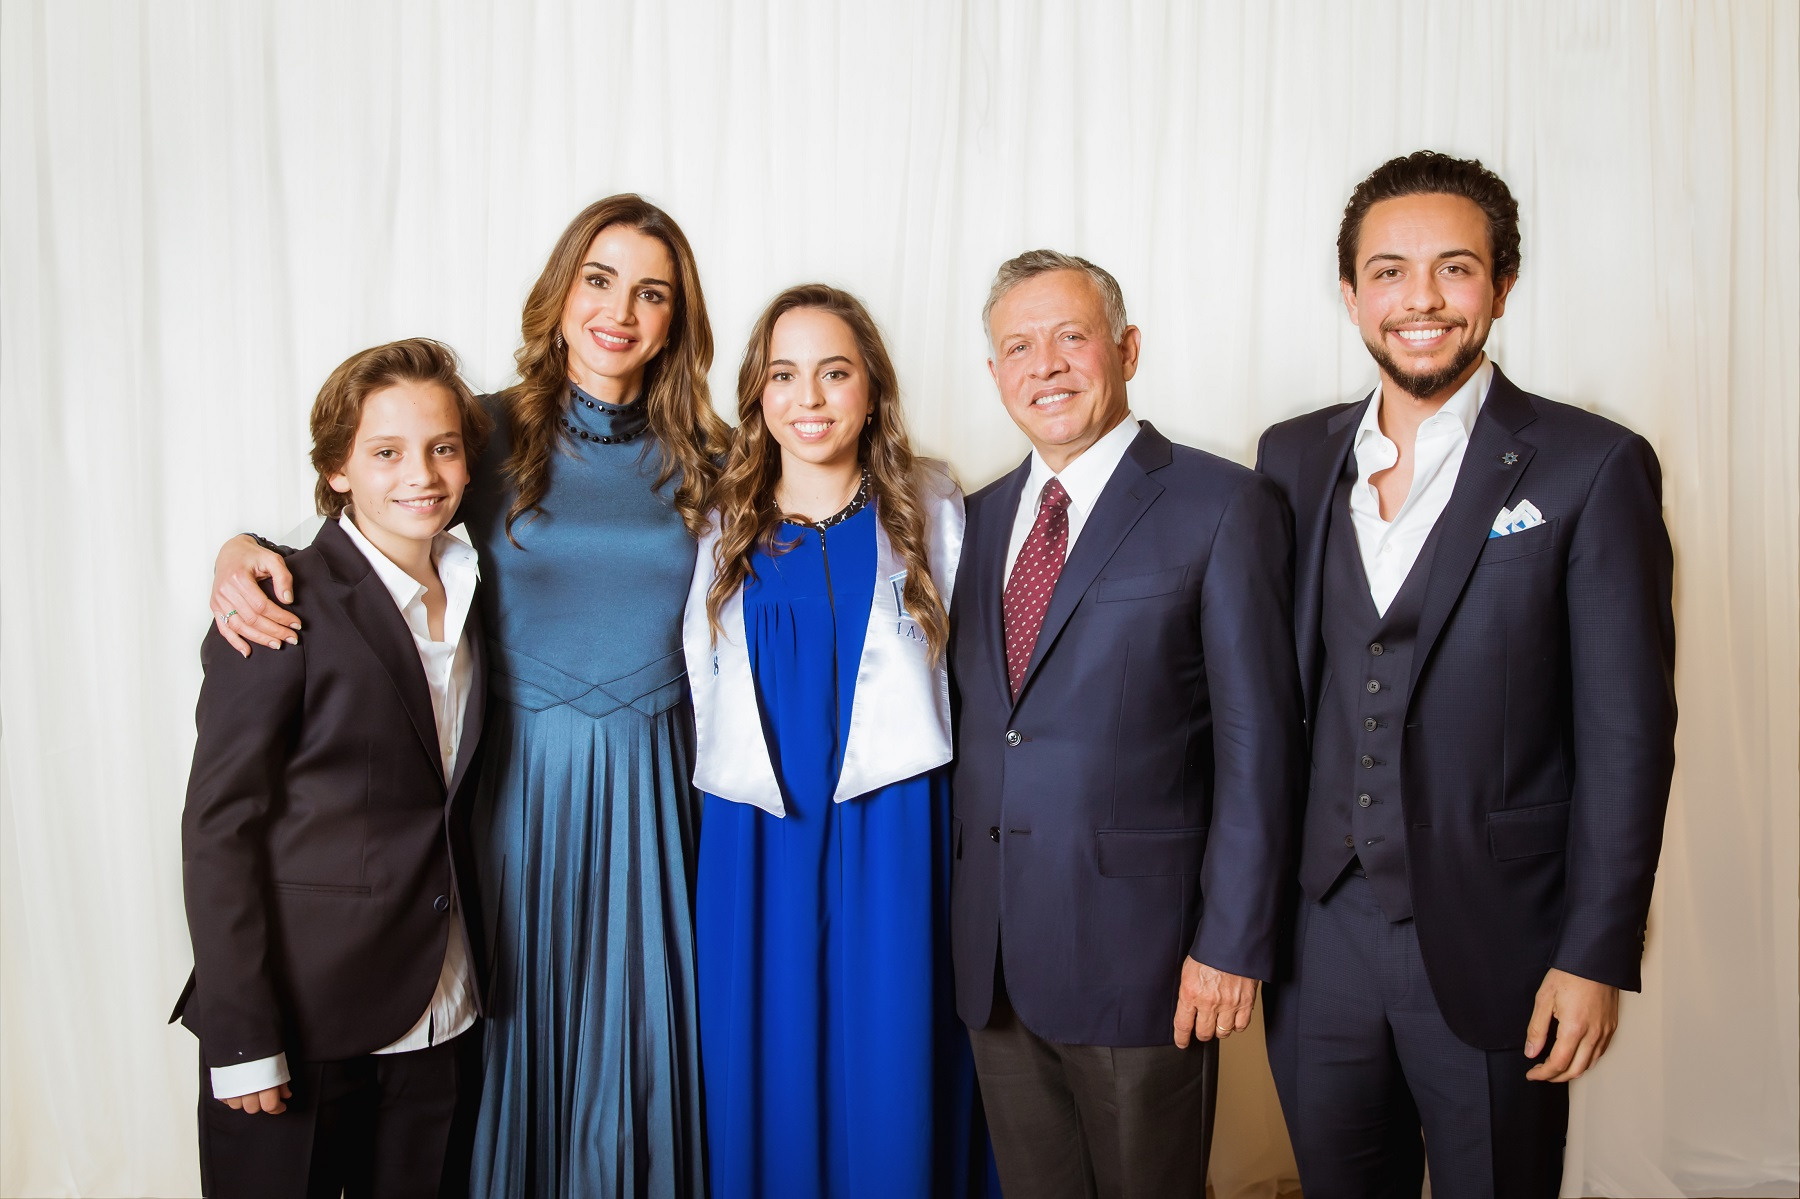 AMMAN, JORDAN- MAY 22: In this handout image provided by the Royal Hashemite Court,  Jordan's King Abdullah II (2nd-R), his wife Queen Rania and (2nd-L), Crown Prince Al Hussein (R) and Prince Hashem (L) attend the graduation ceremony of Princess Salma (C) from the International Academy on May 22, 2018 at Amman, Jordan. (Photo by Handout/Royal Hashemite Court via Getty Images)